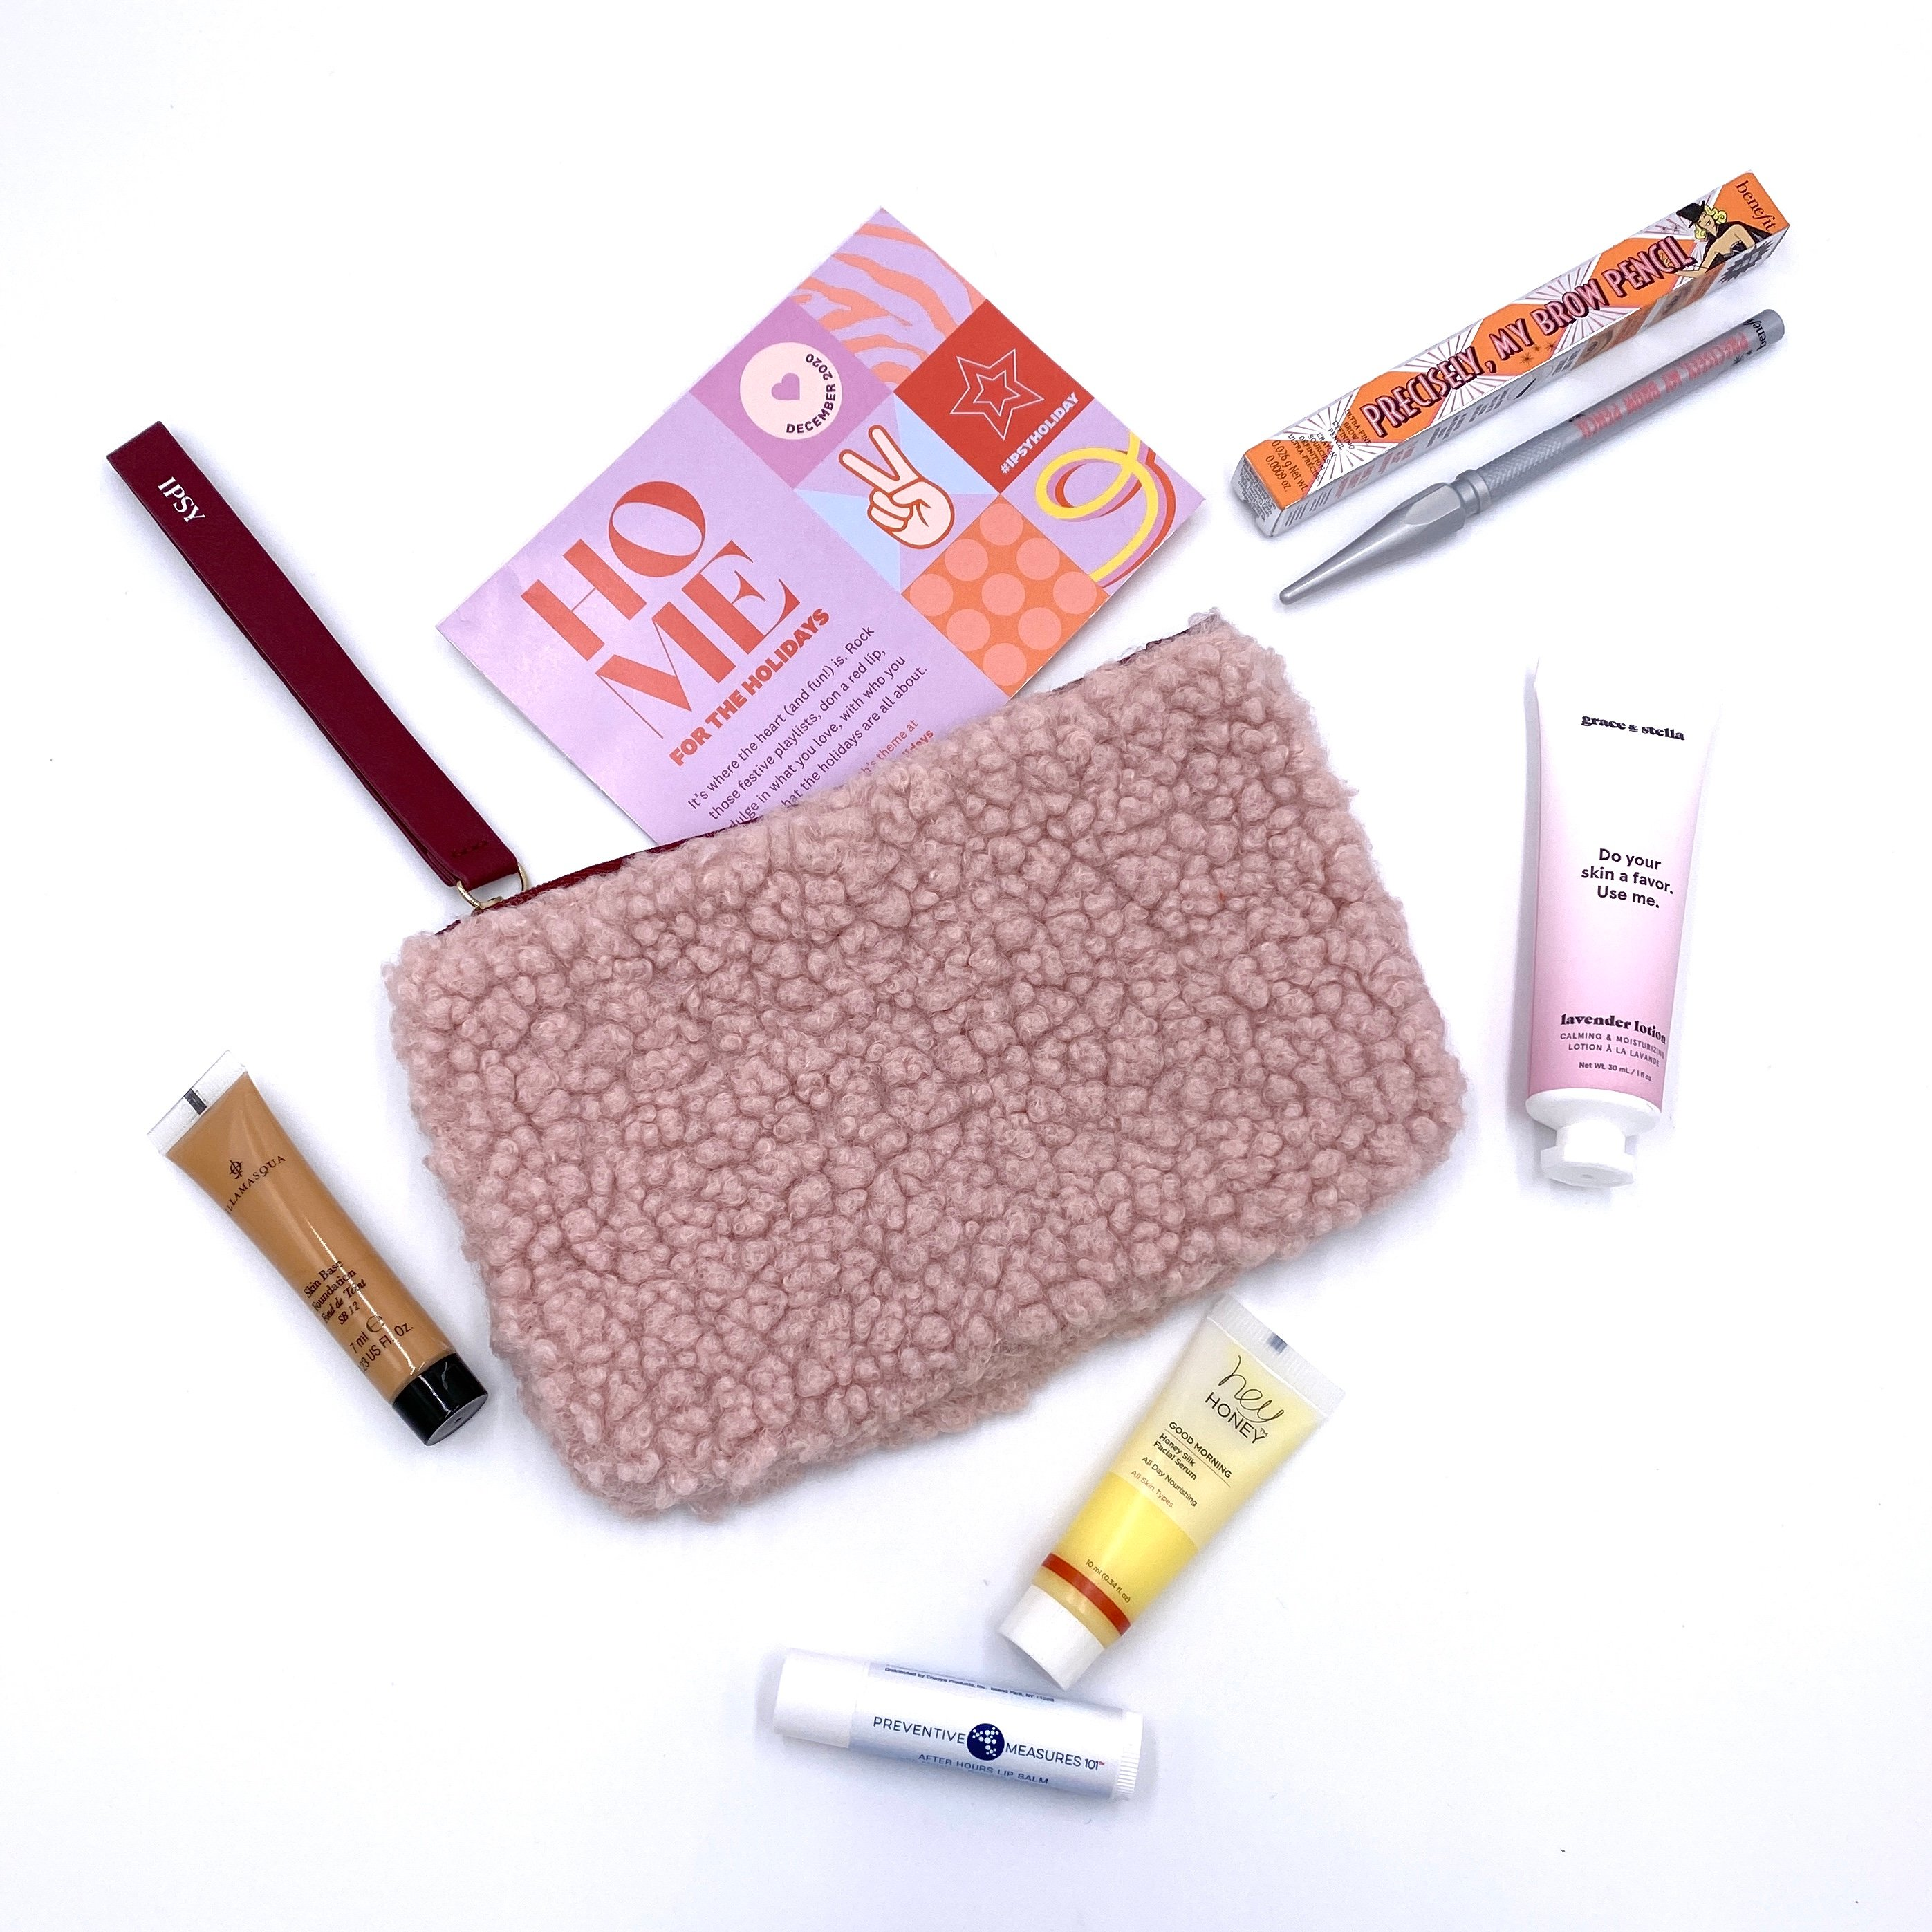 Ipsy December 2020 Review: Grace & Stella, Hey Honey, and More!